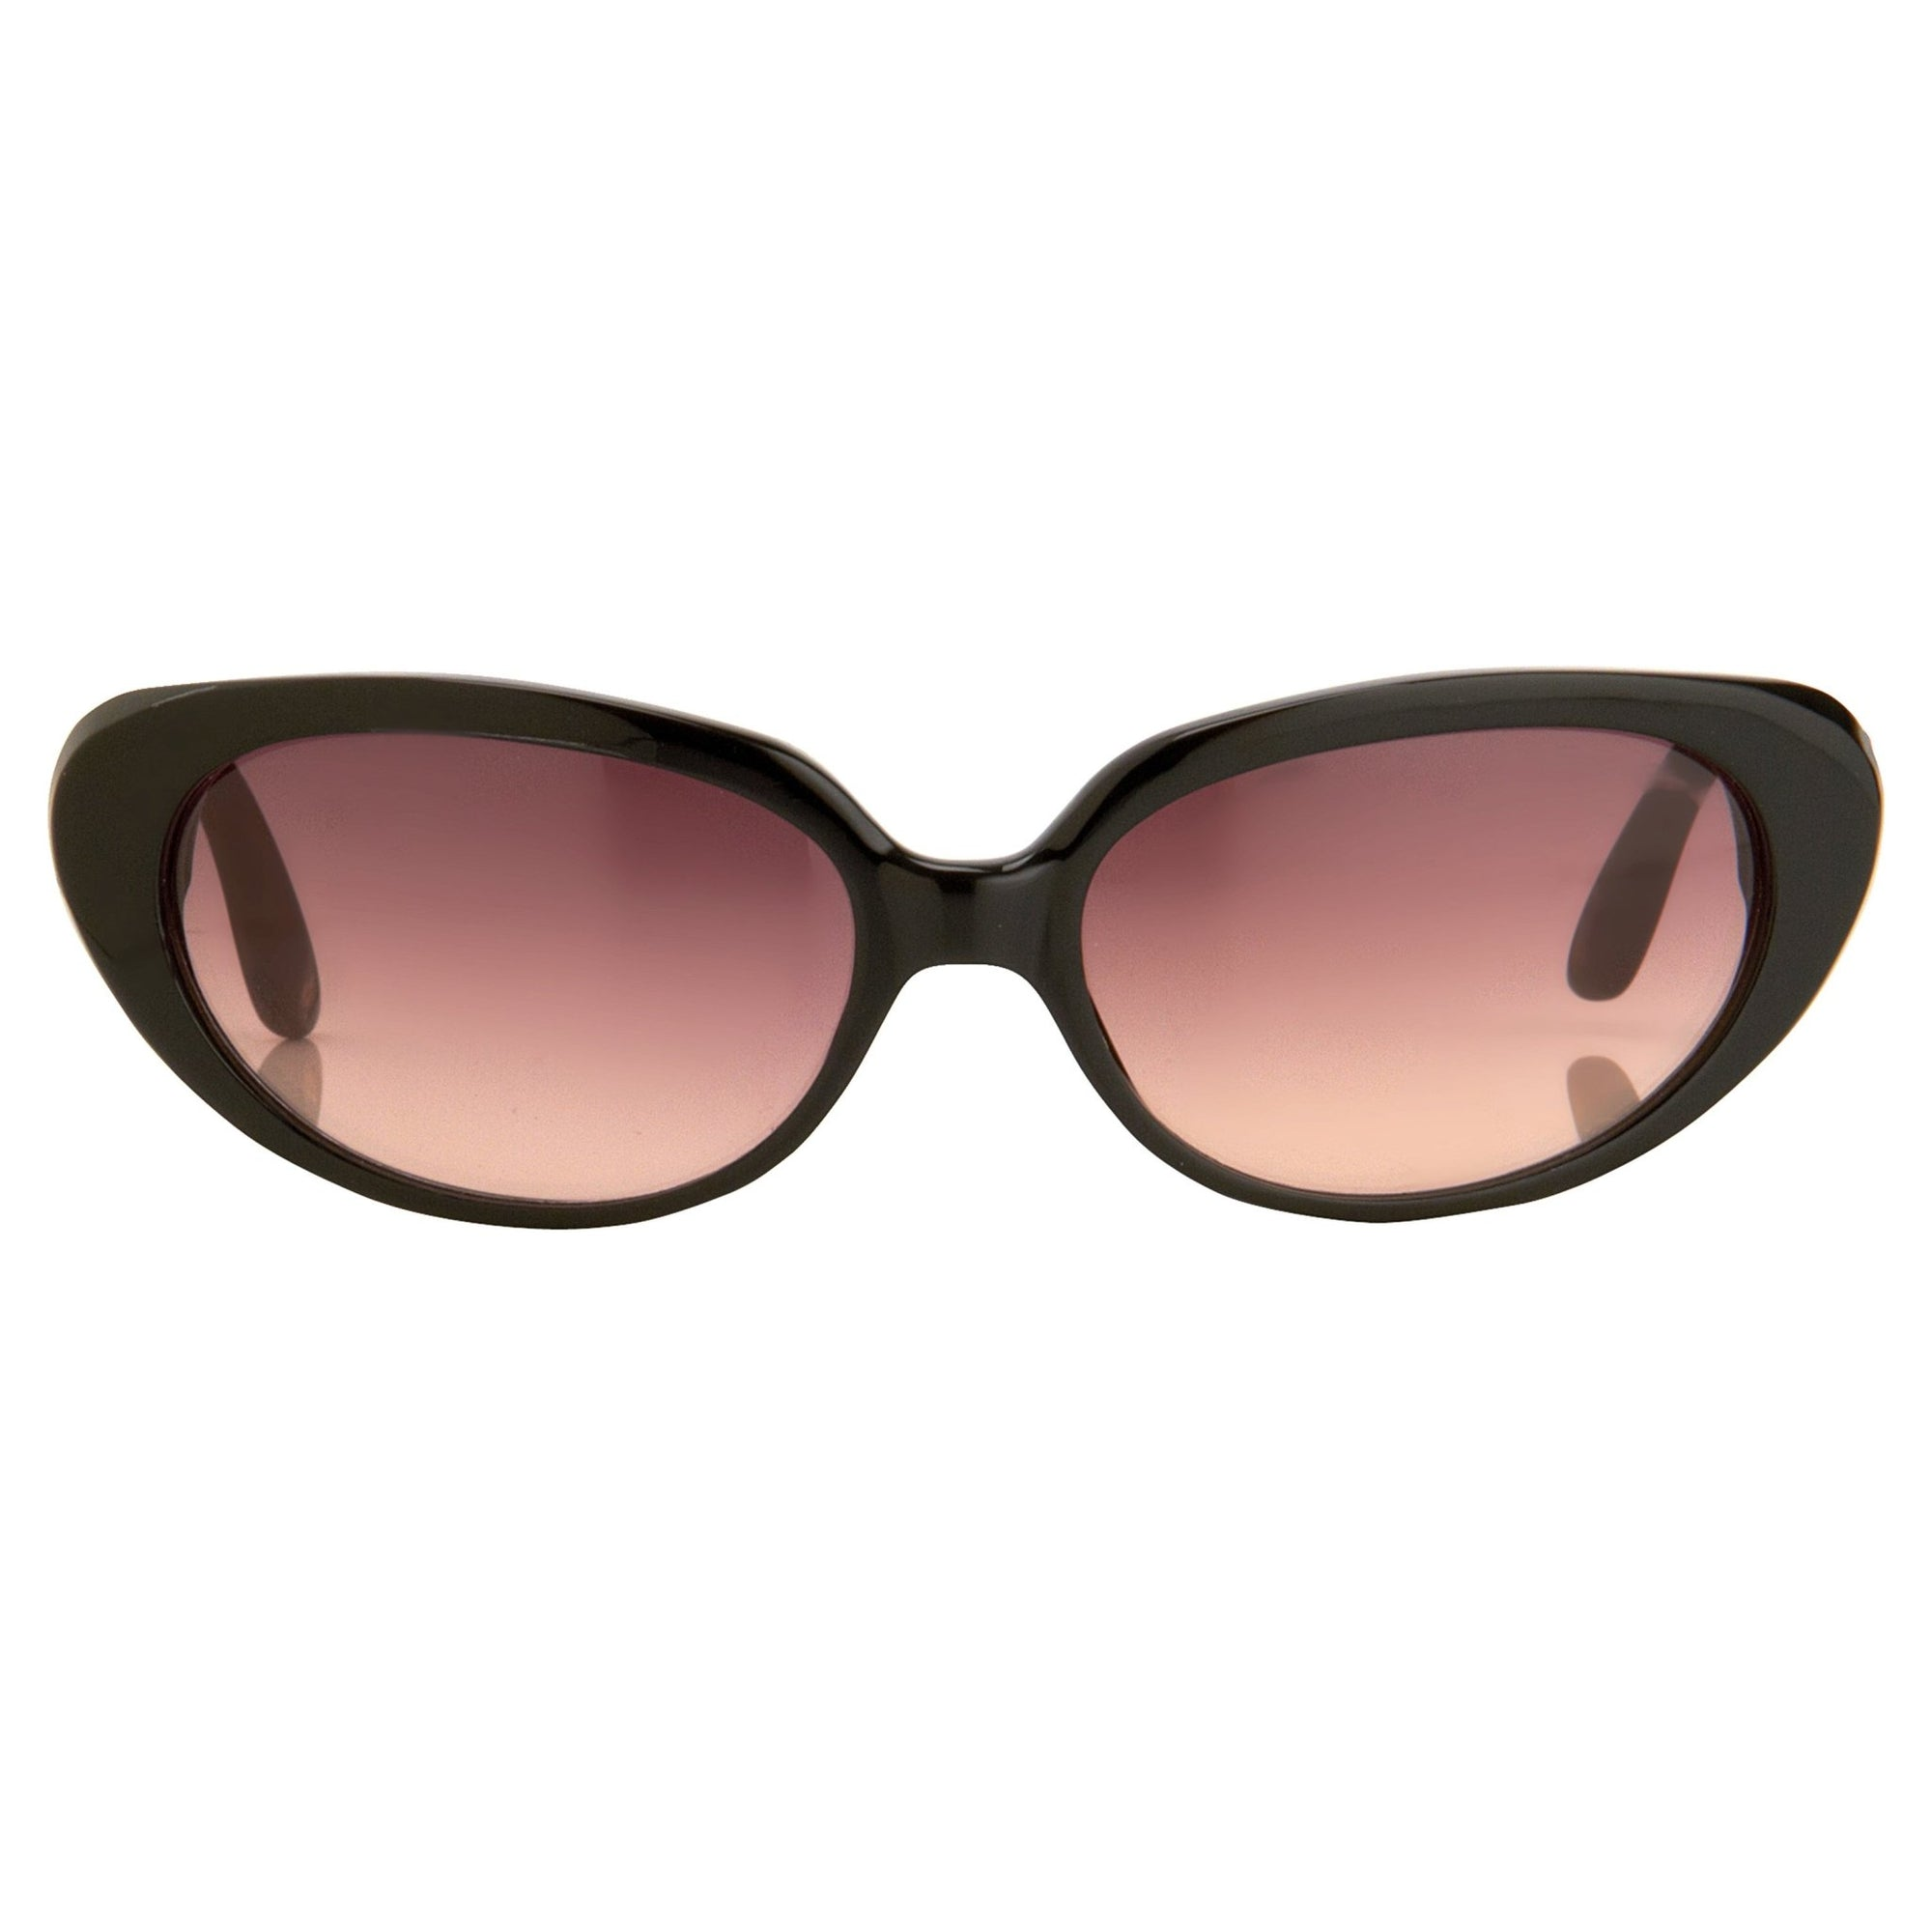 Oscar De La Renta Eyeglasses Cat Eye Black and Pink Lenses - ODLR43C6SUN - Watches & Crystals